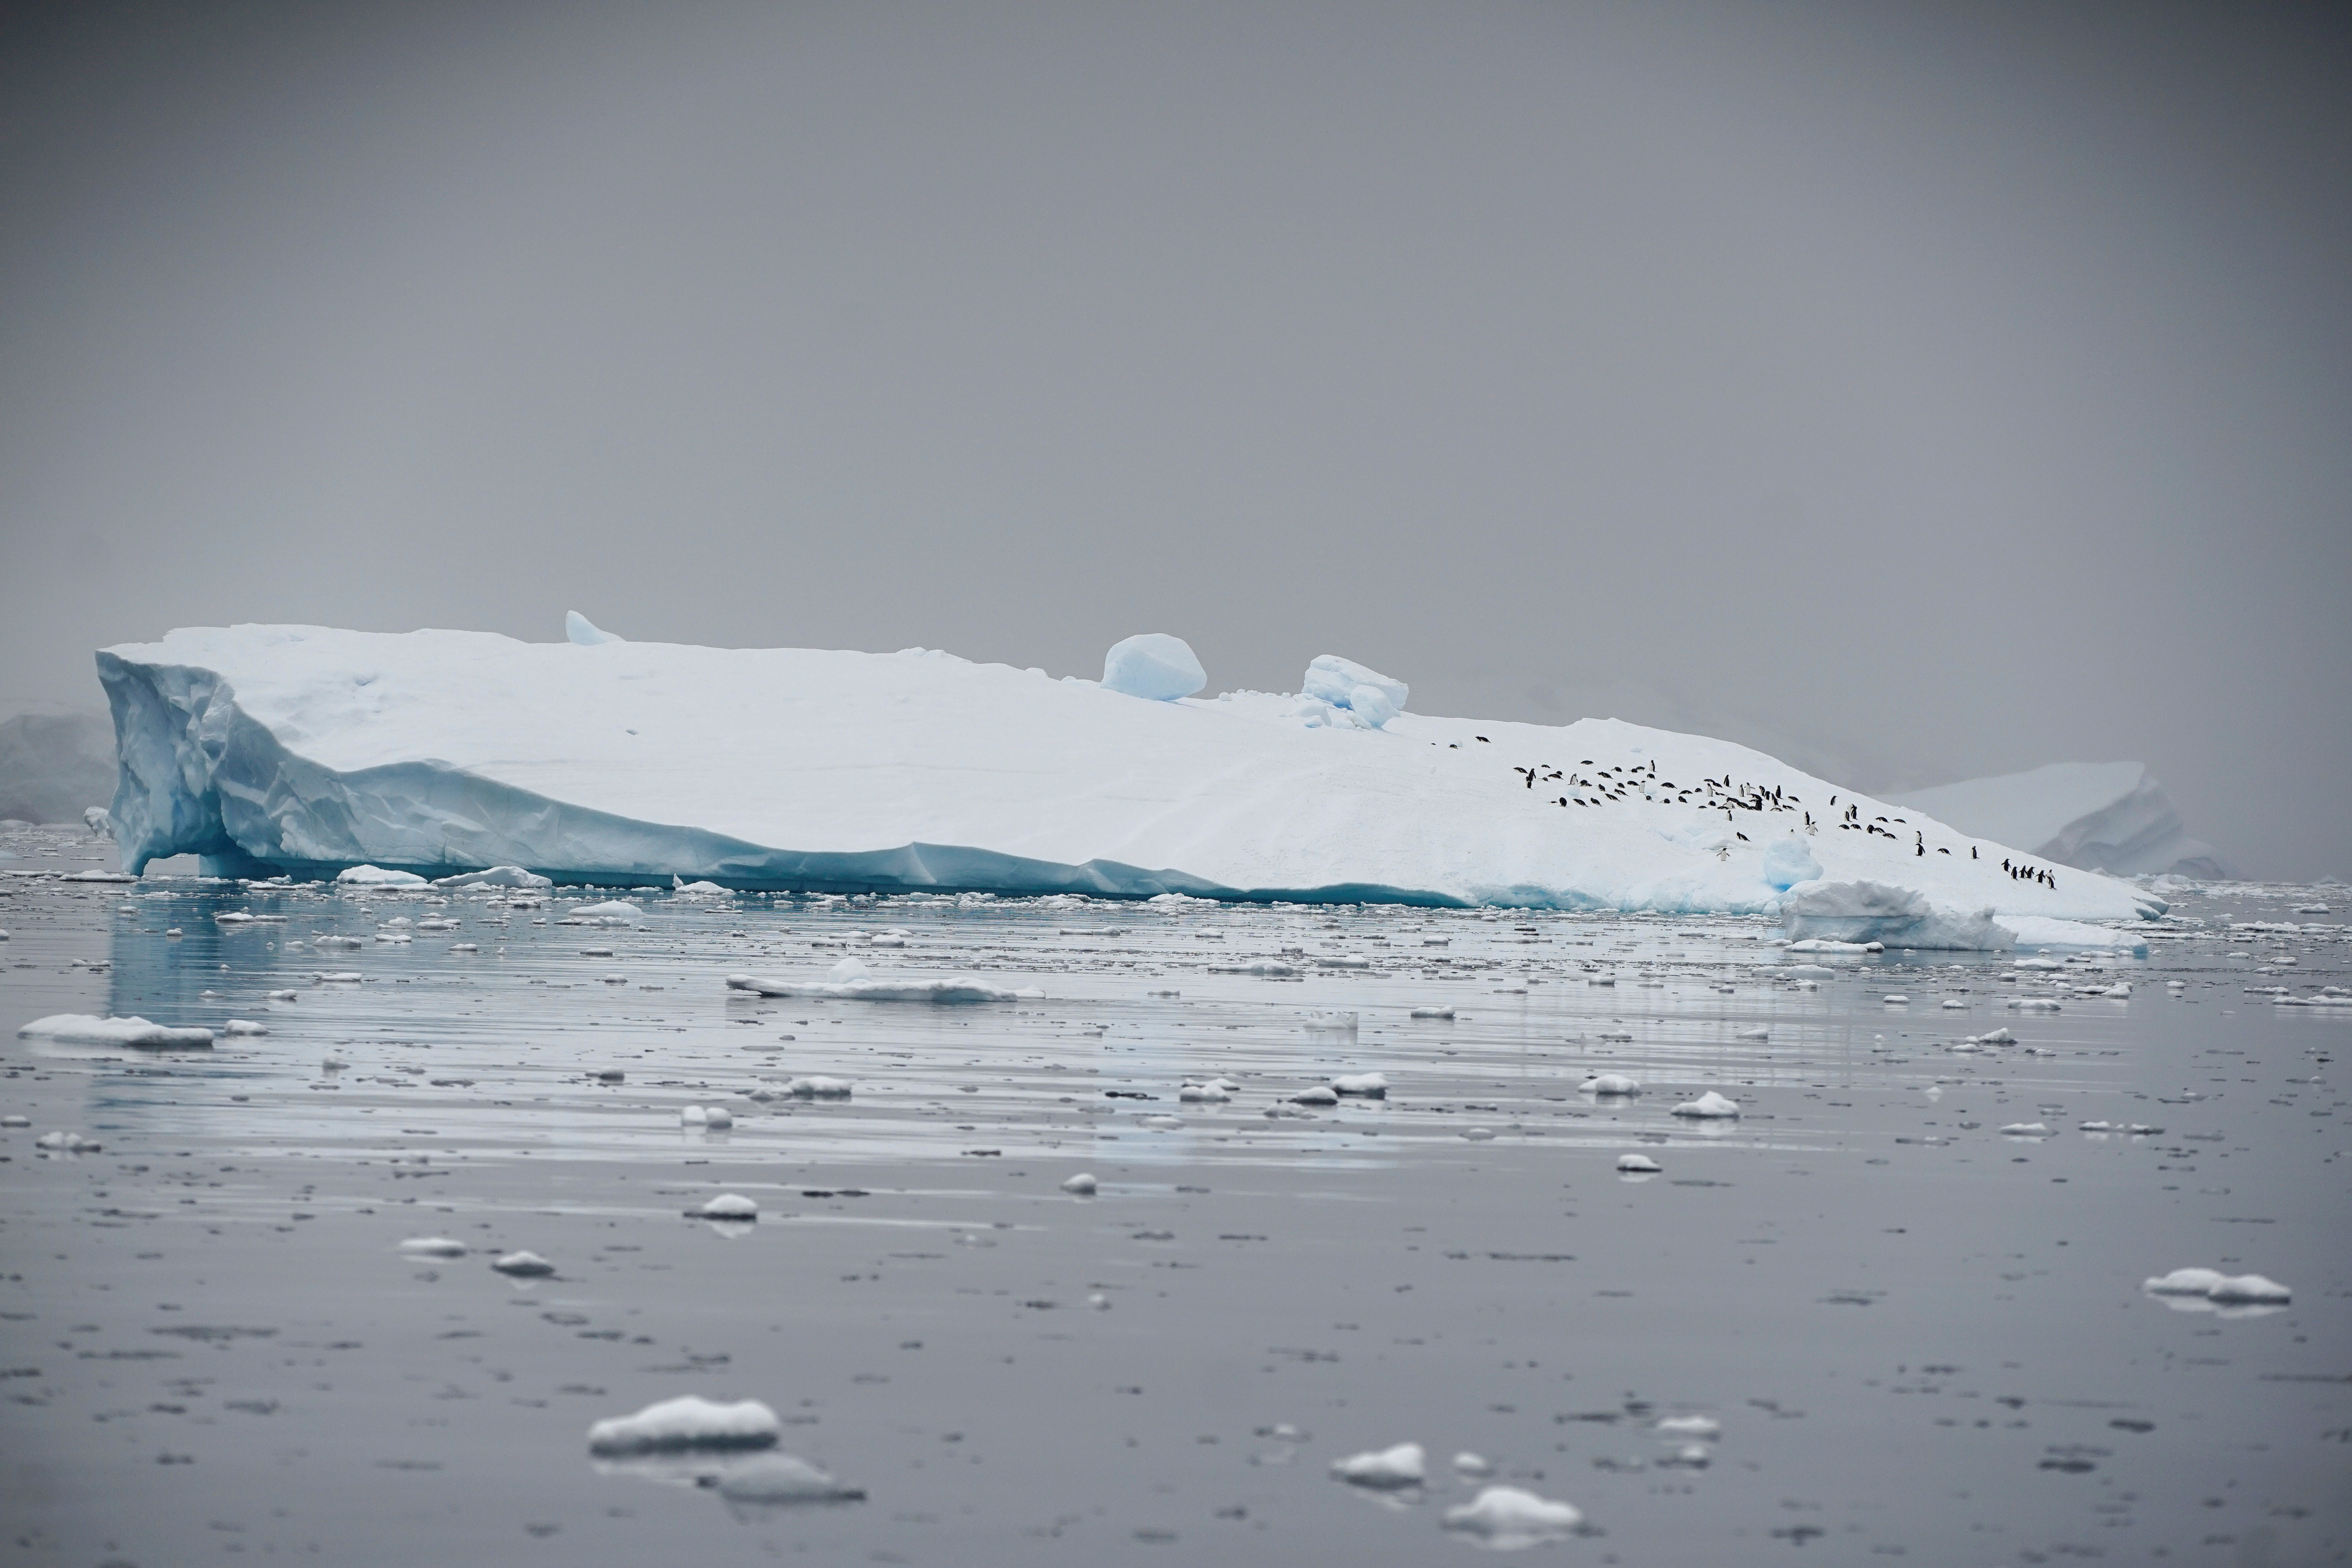 An iceberg floats in Andvord Bay, Antarctica, February 14, 2018.